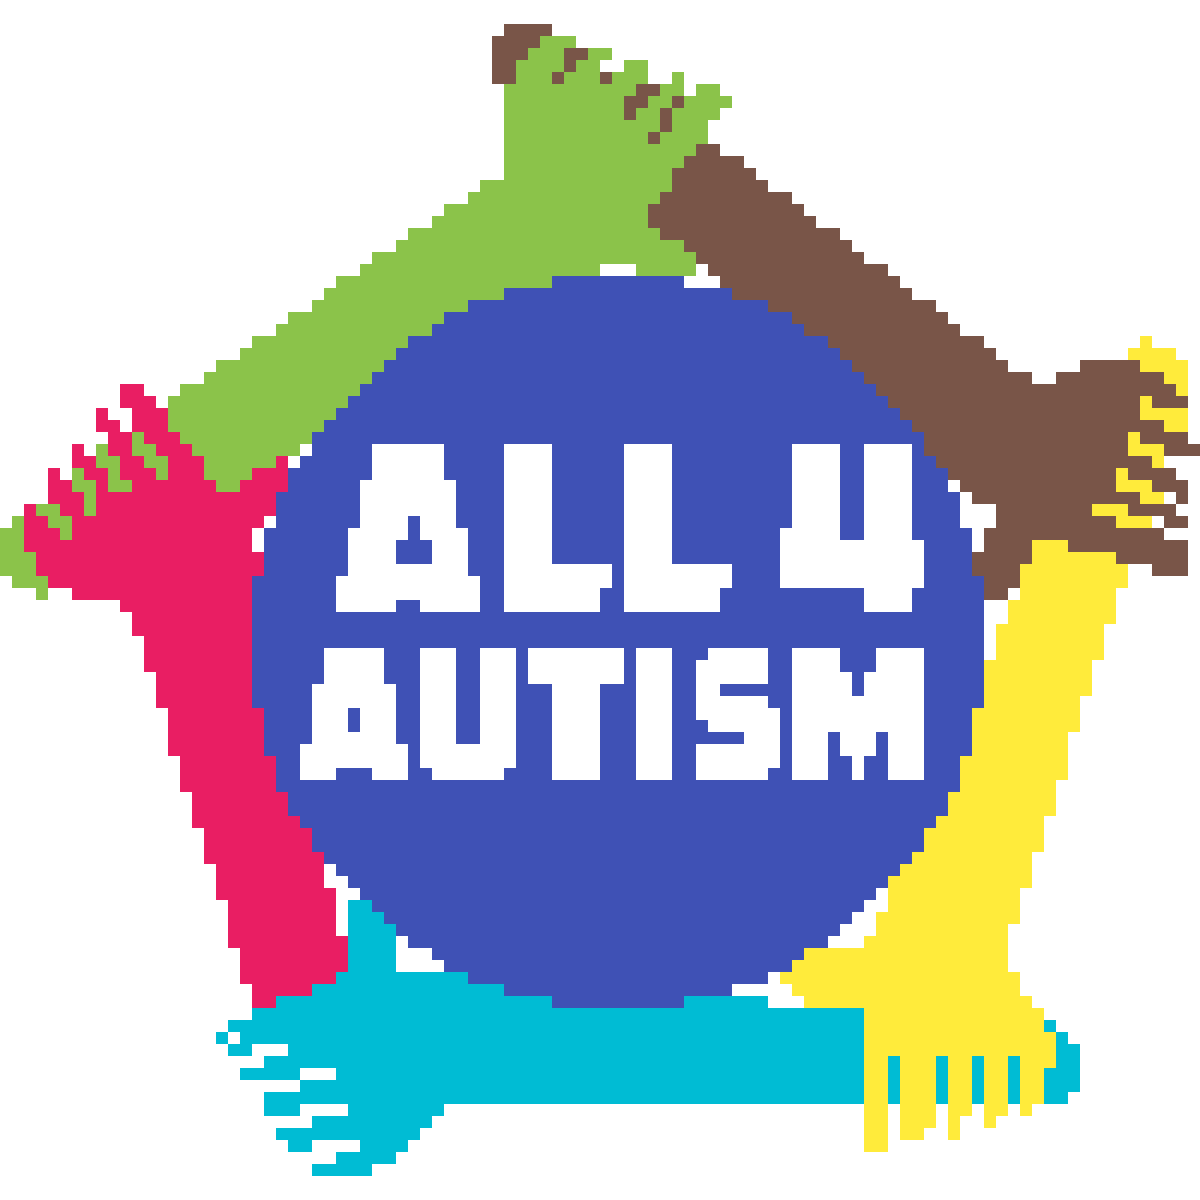 Pixilart All 4 Autism Hd By Unnamedracing